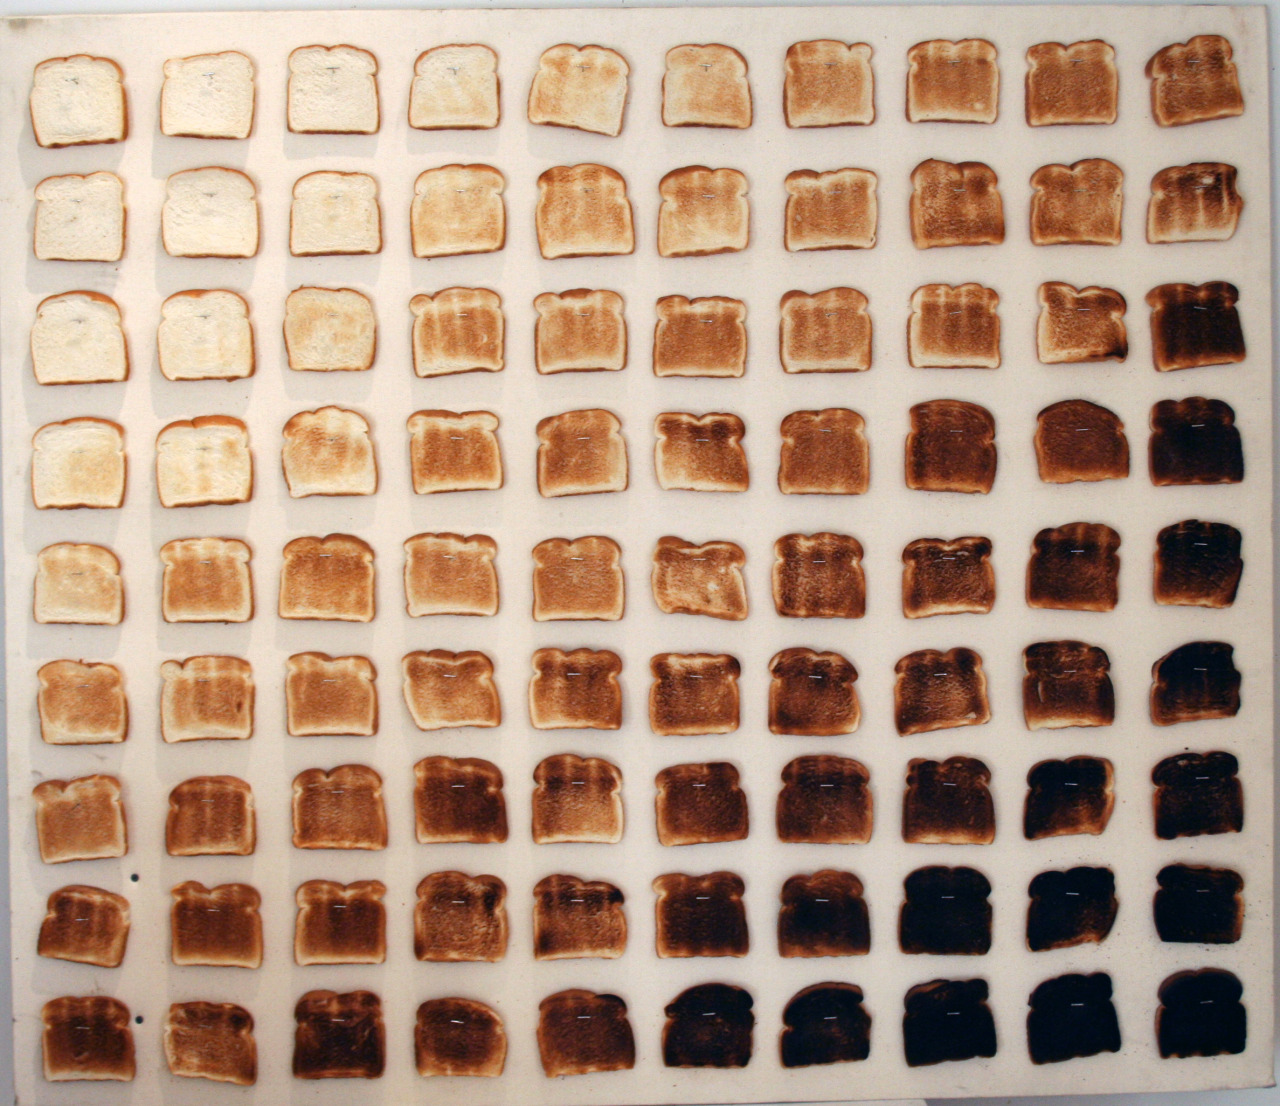 thefashsionchronicles:  90 shades of bread.